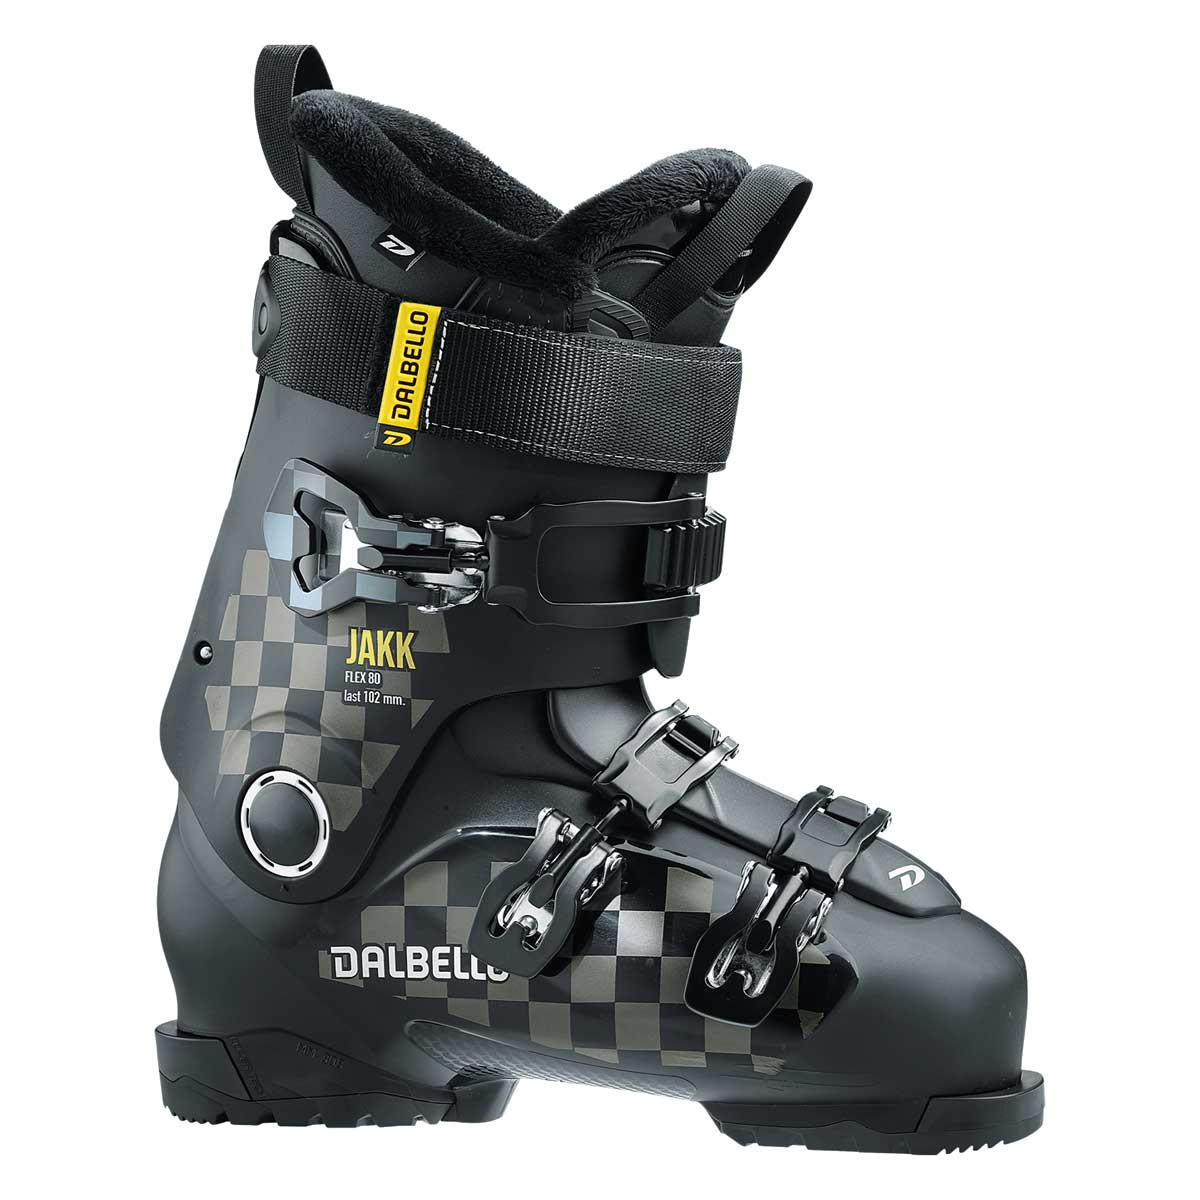 Dalbello Jakk Ski Boot in Black and Black